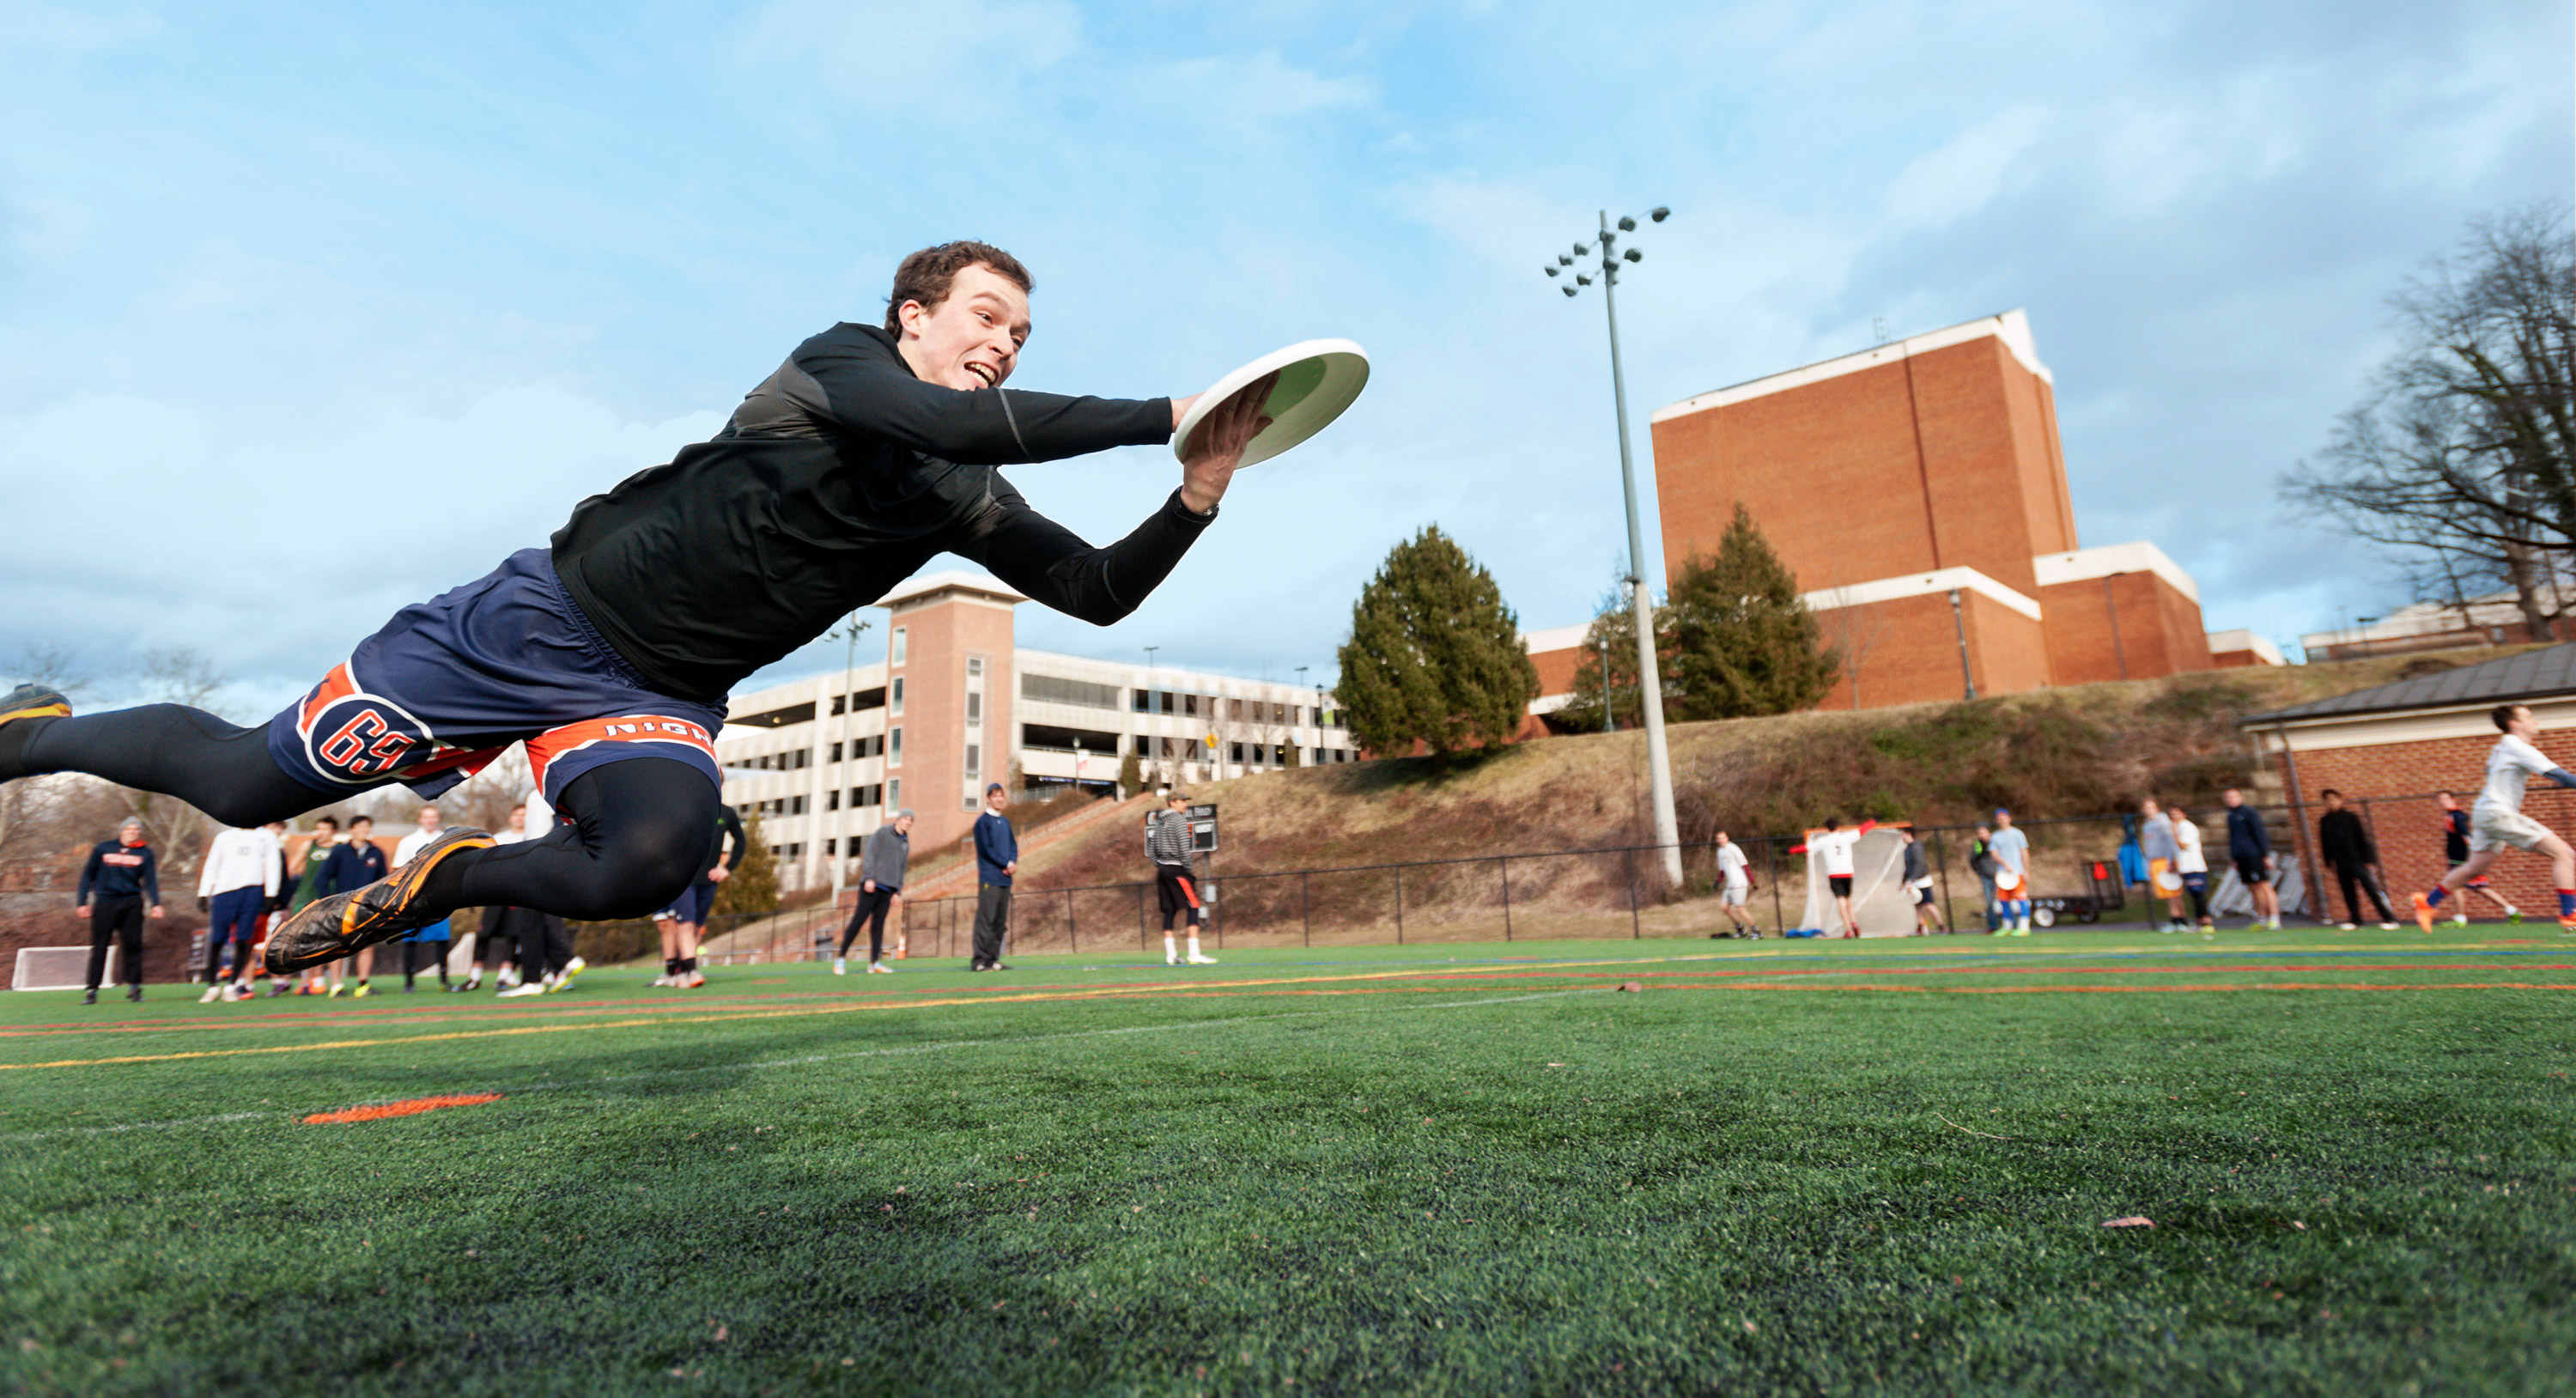 Student playing ultimate frisbee